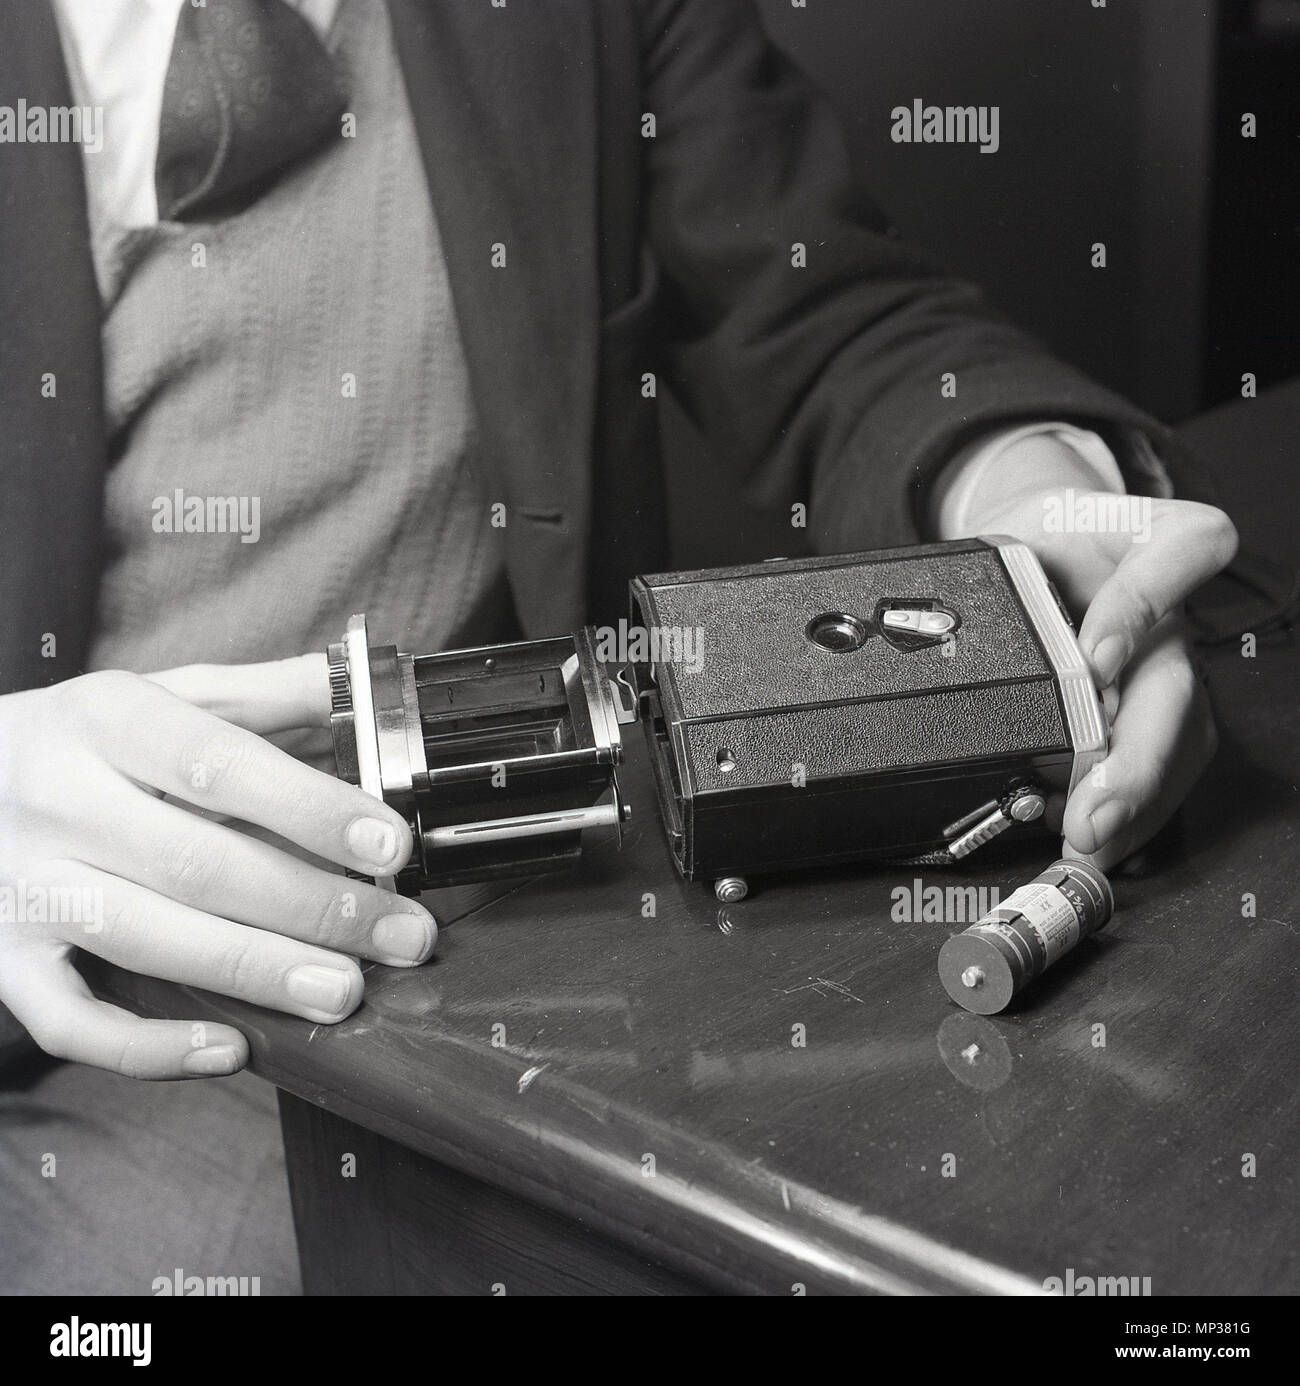 1950s, historical picture showing the camera unit or cartridge that holds the photographic 127 roll film of a kodak box camera, a 'Brownie', reflex, a popular camera model in this era, made in england from 1946 to 1960. - Stock Image